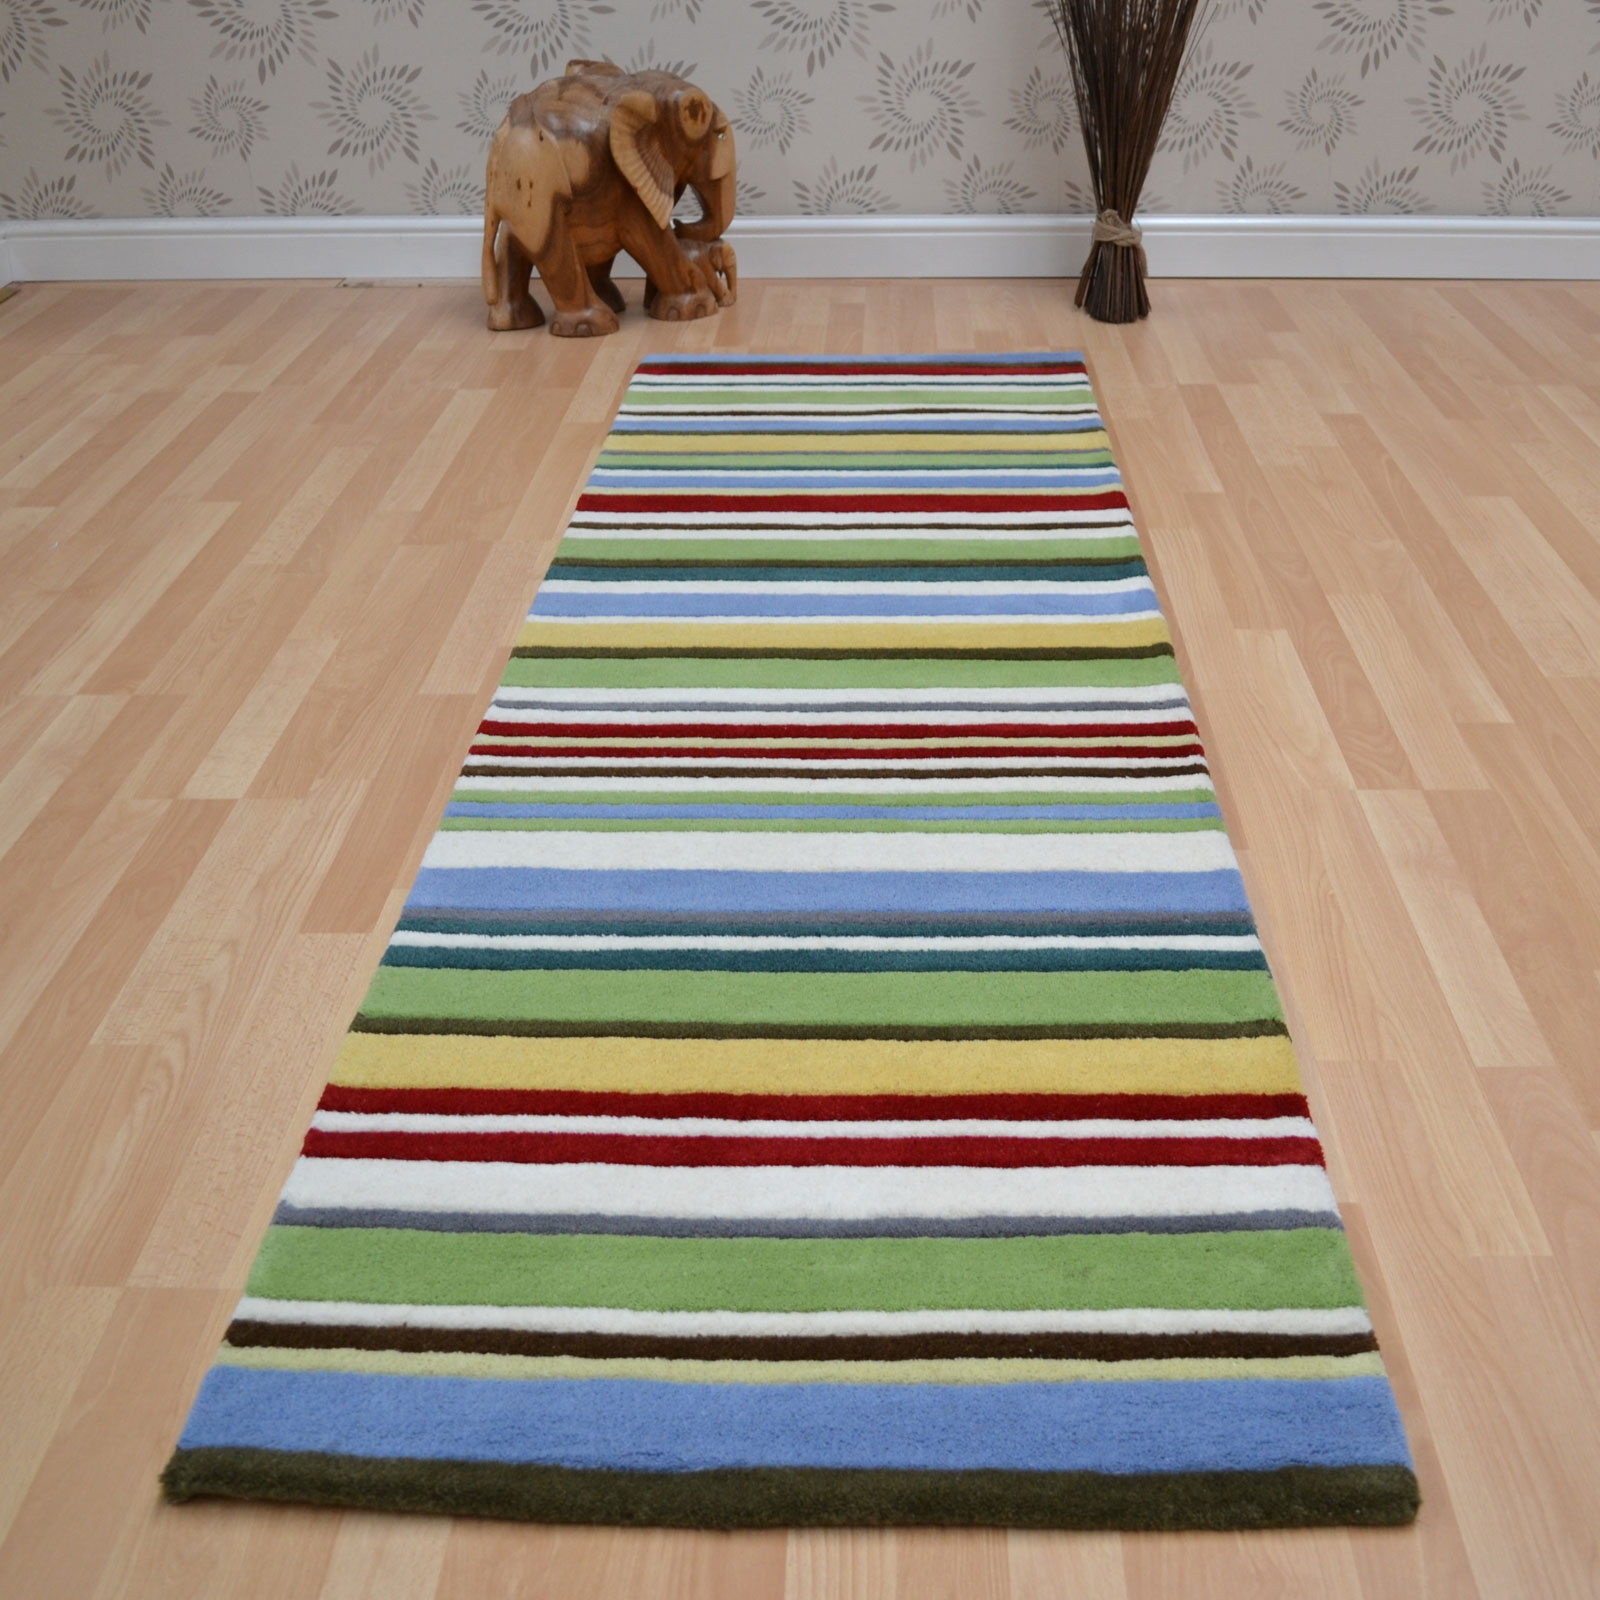 Hall Runner Rugs Uk Roselawnlutheran Pertaining To Hallway Carpet Runners (#16 of 20)